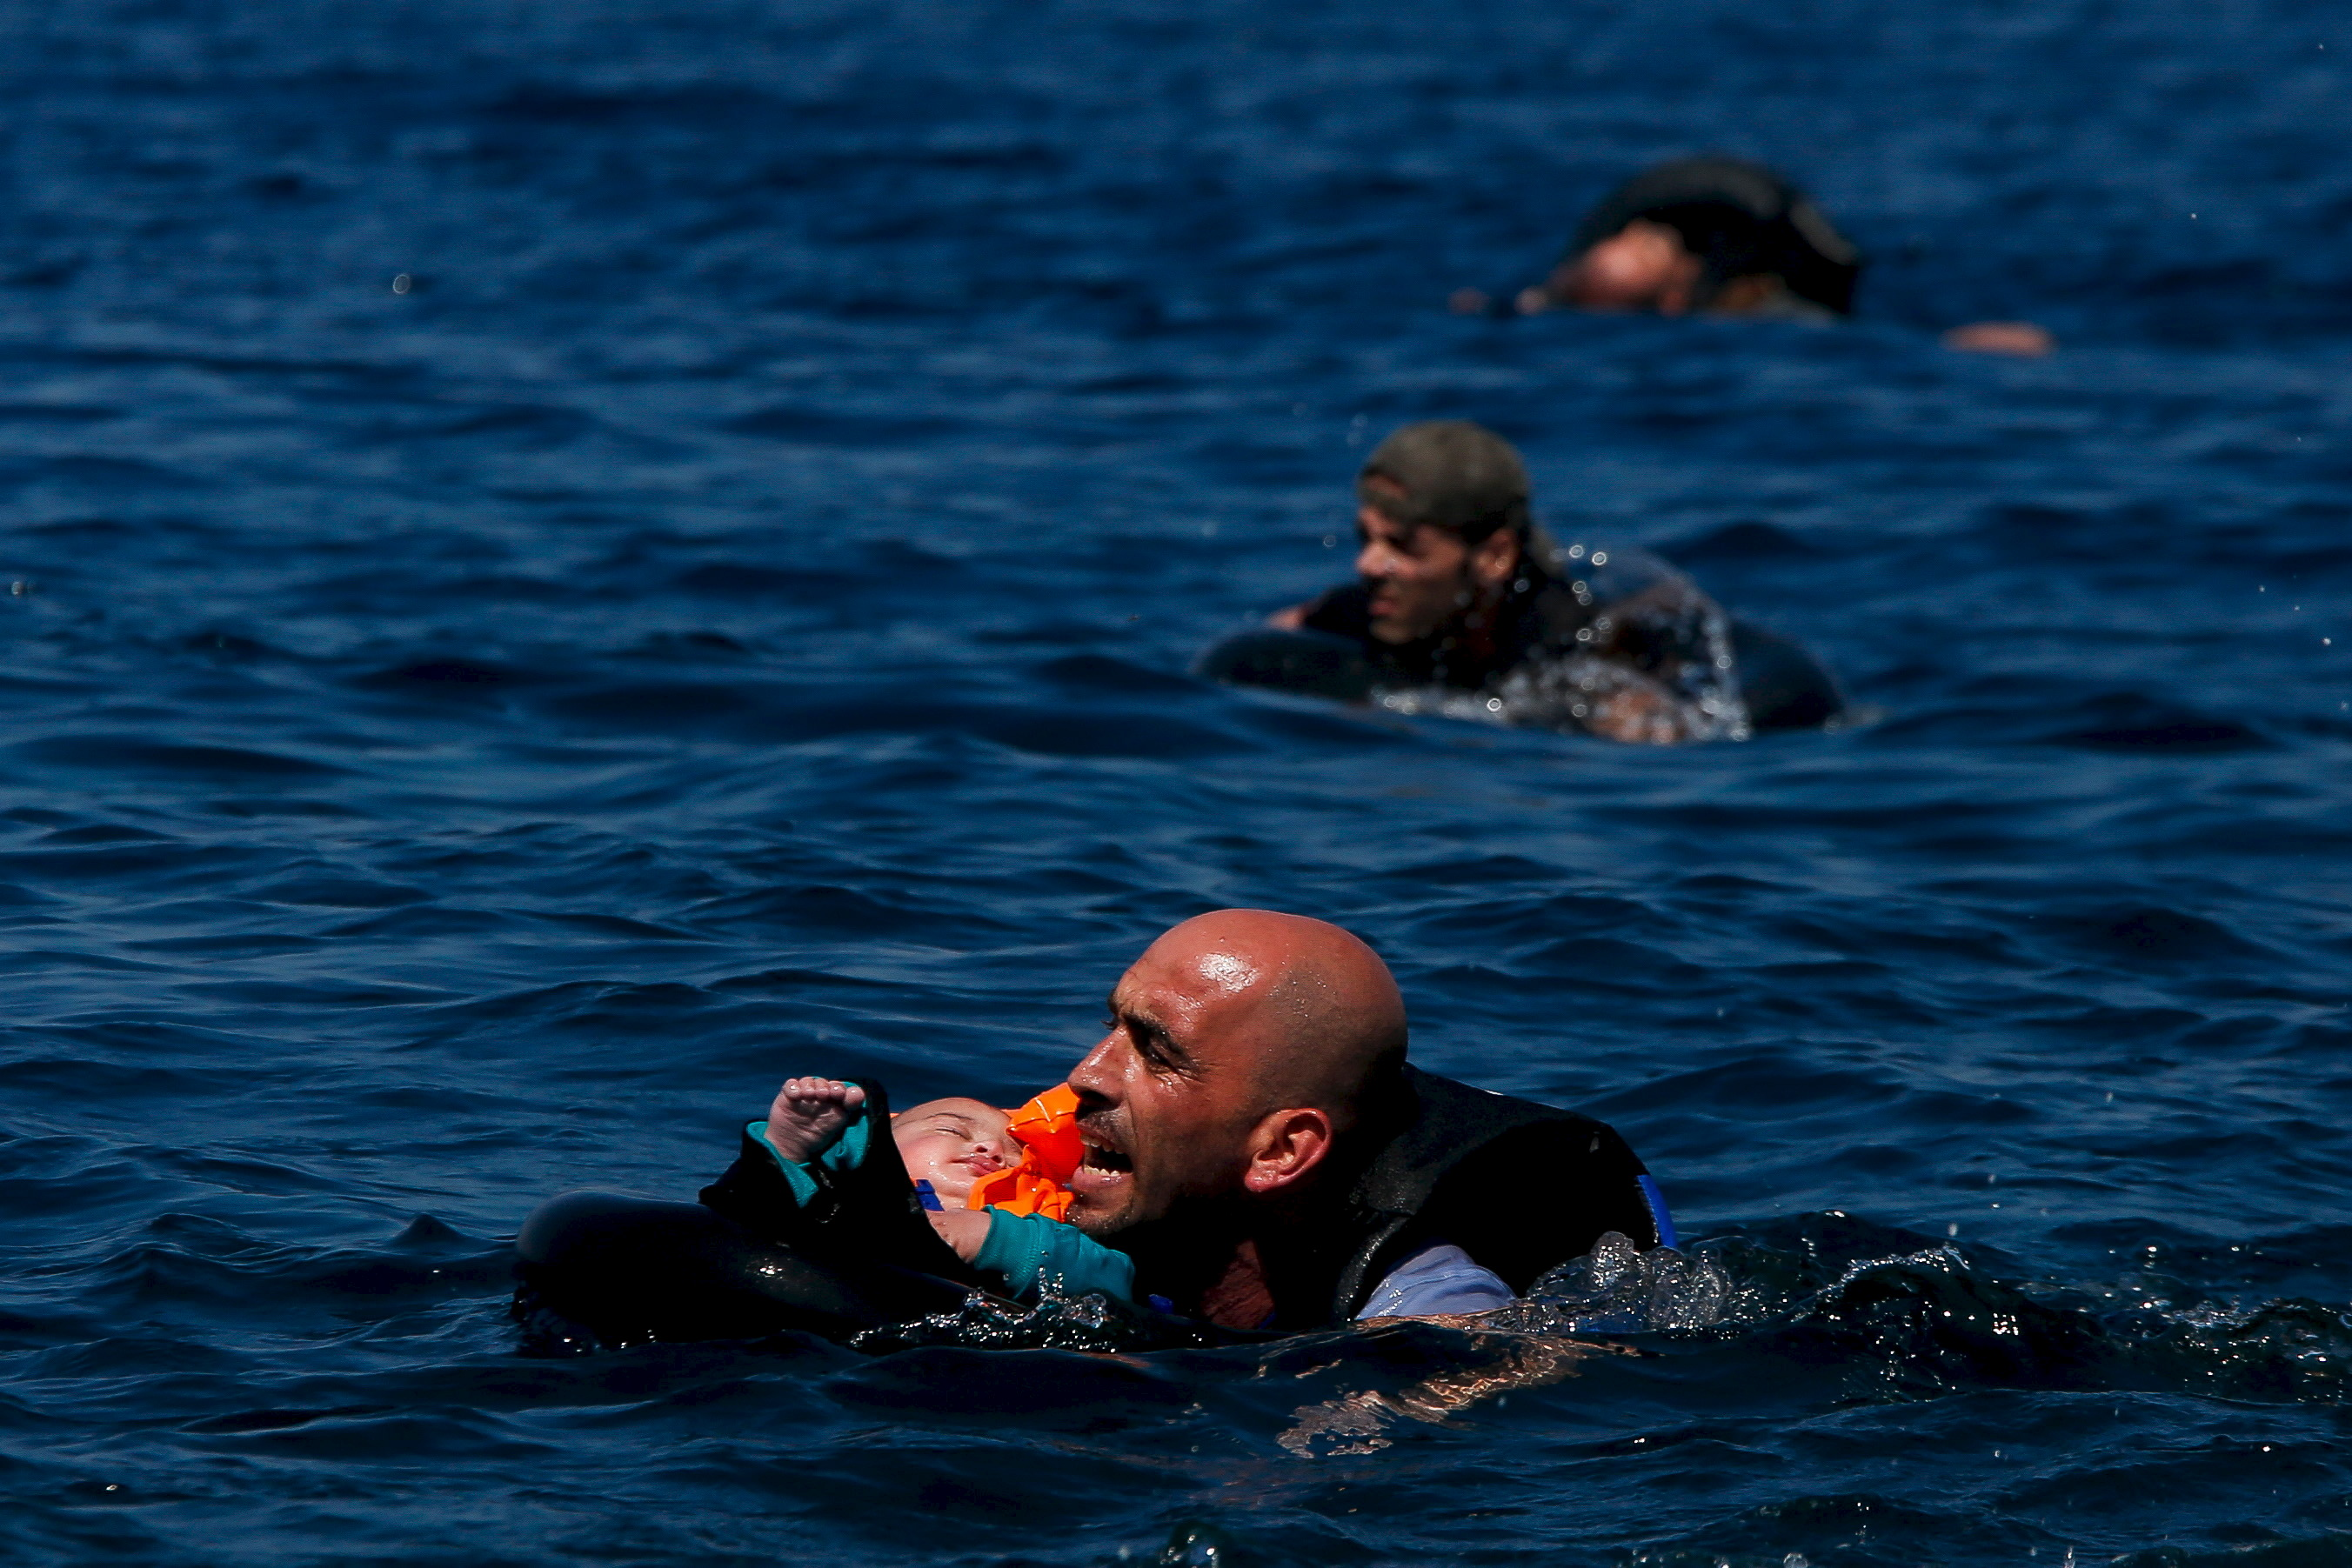 A Syrian refugee holding a baby swims towards the Greek island of Lesbos, Sept. 12, 2015, after another boat crammed with dozens of migrants and refugees deflated and sank. (Reuters)